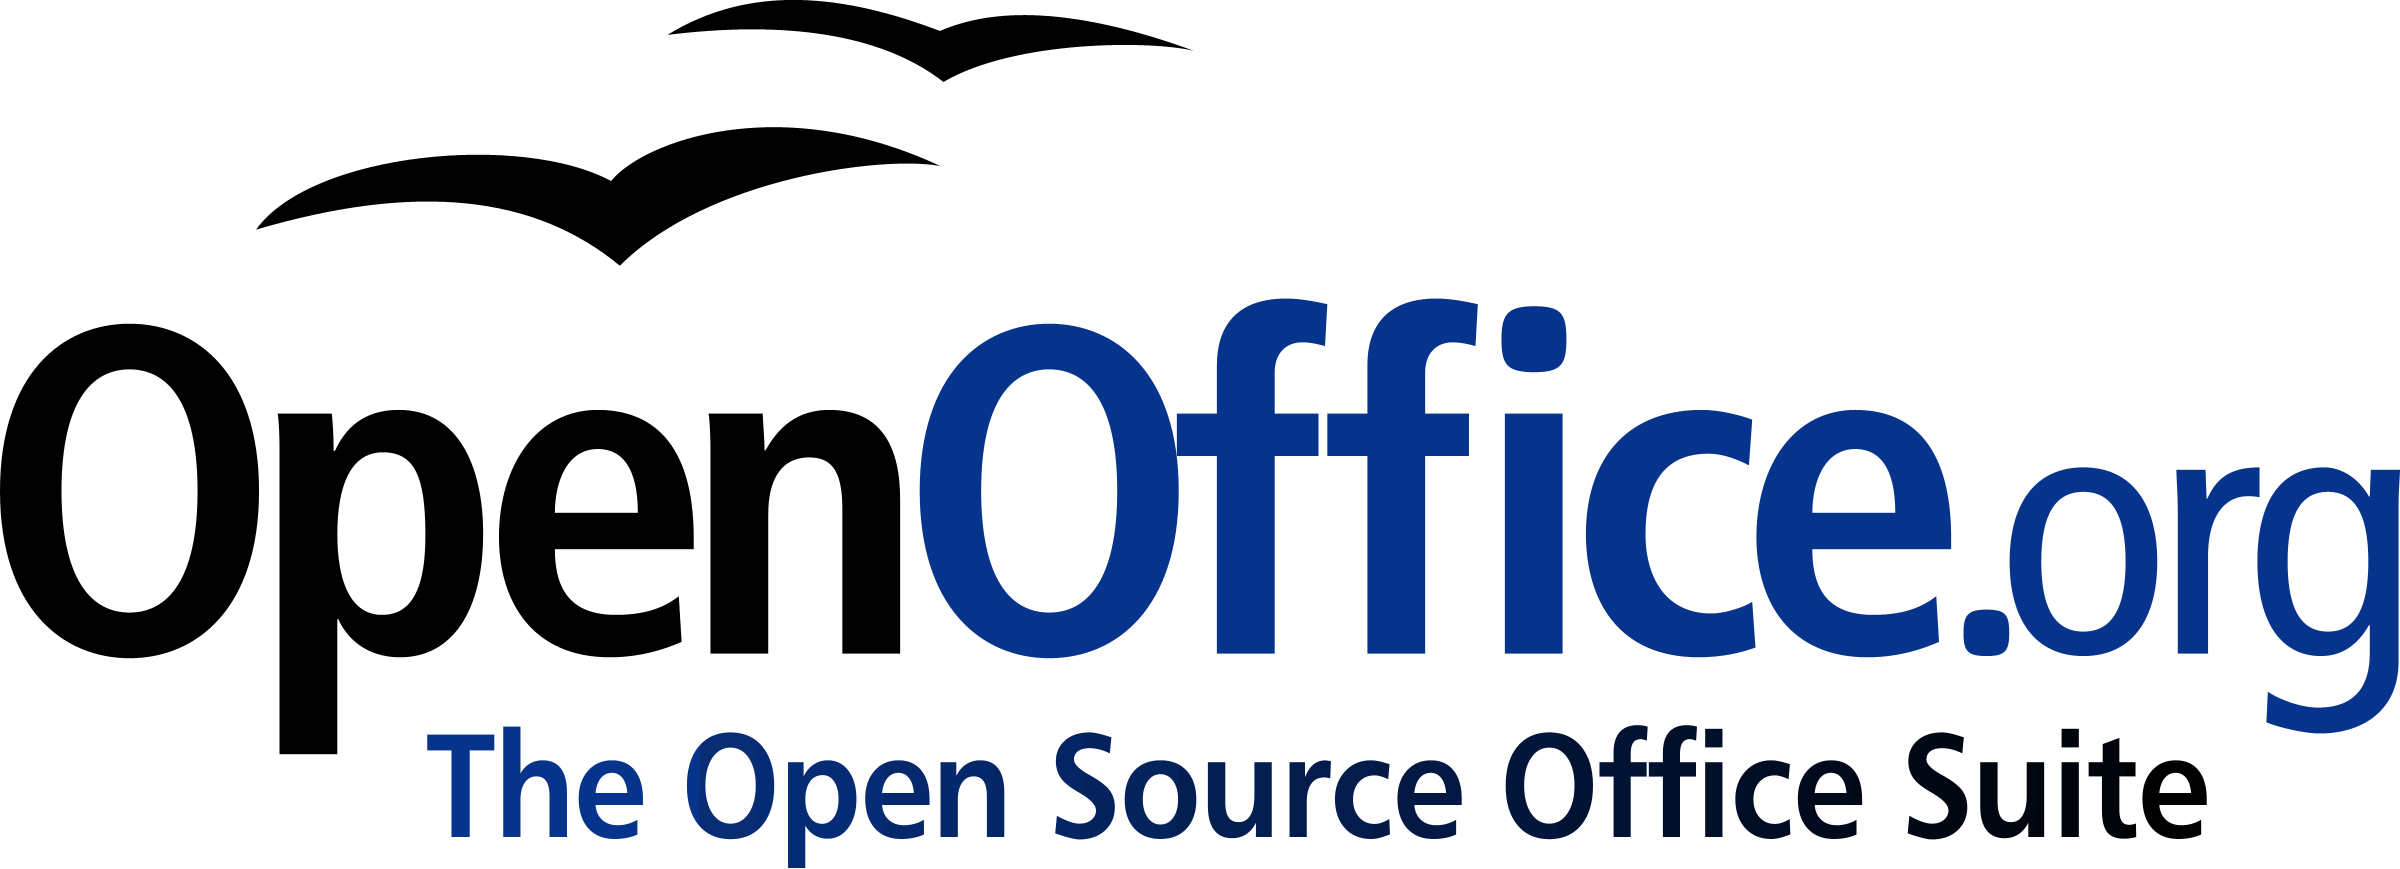 Printing Envelopes Diagnostics For Openoffice